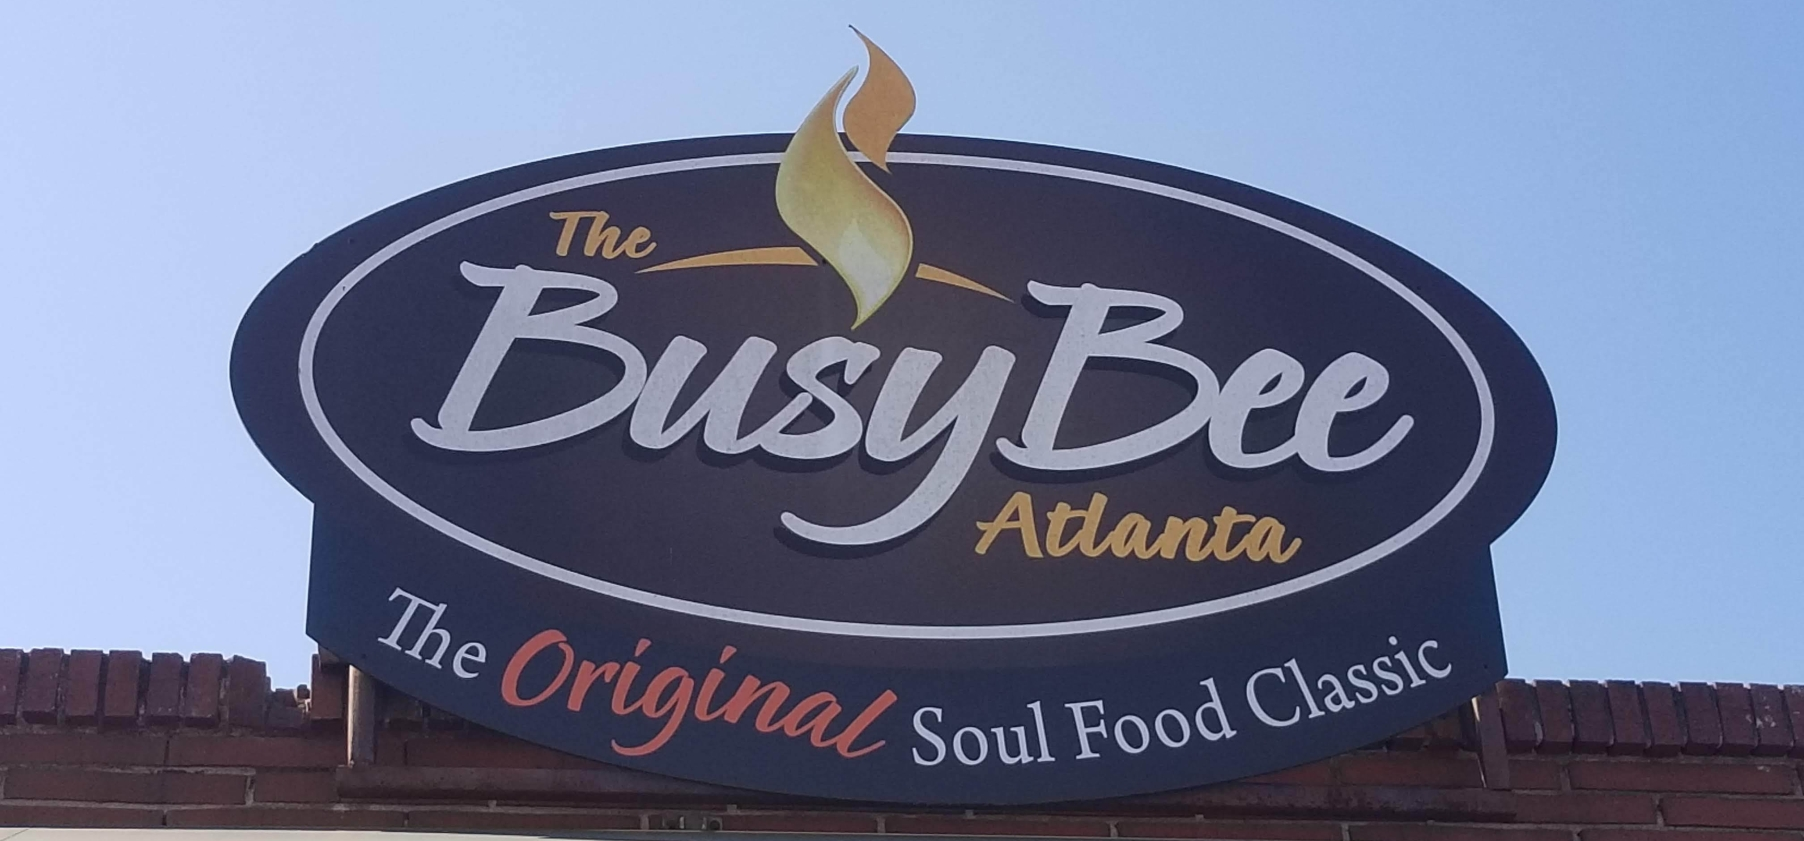 Busy Bee Cafe Atlanta